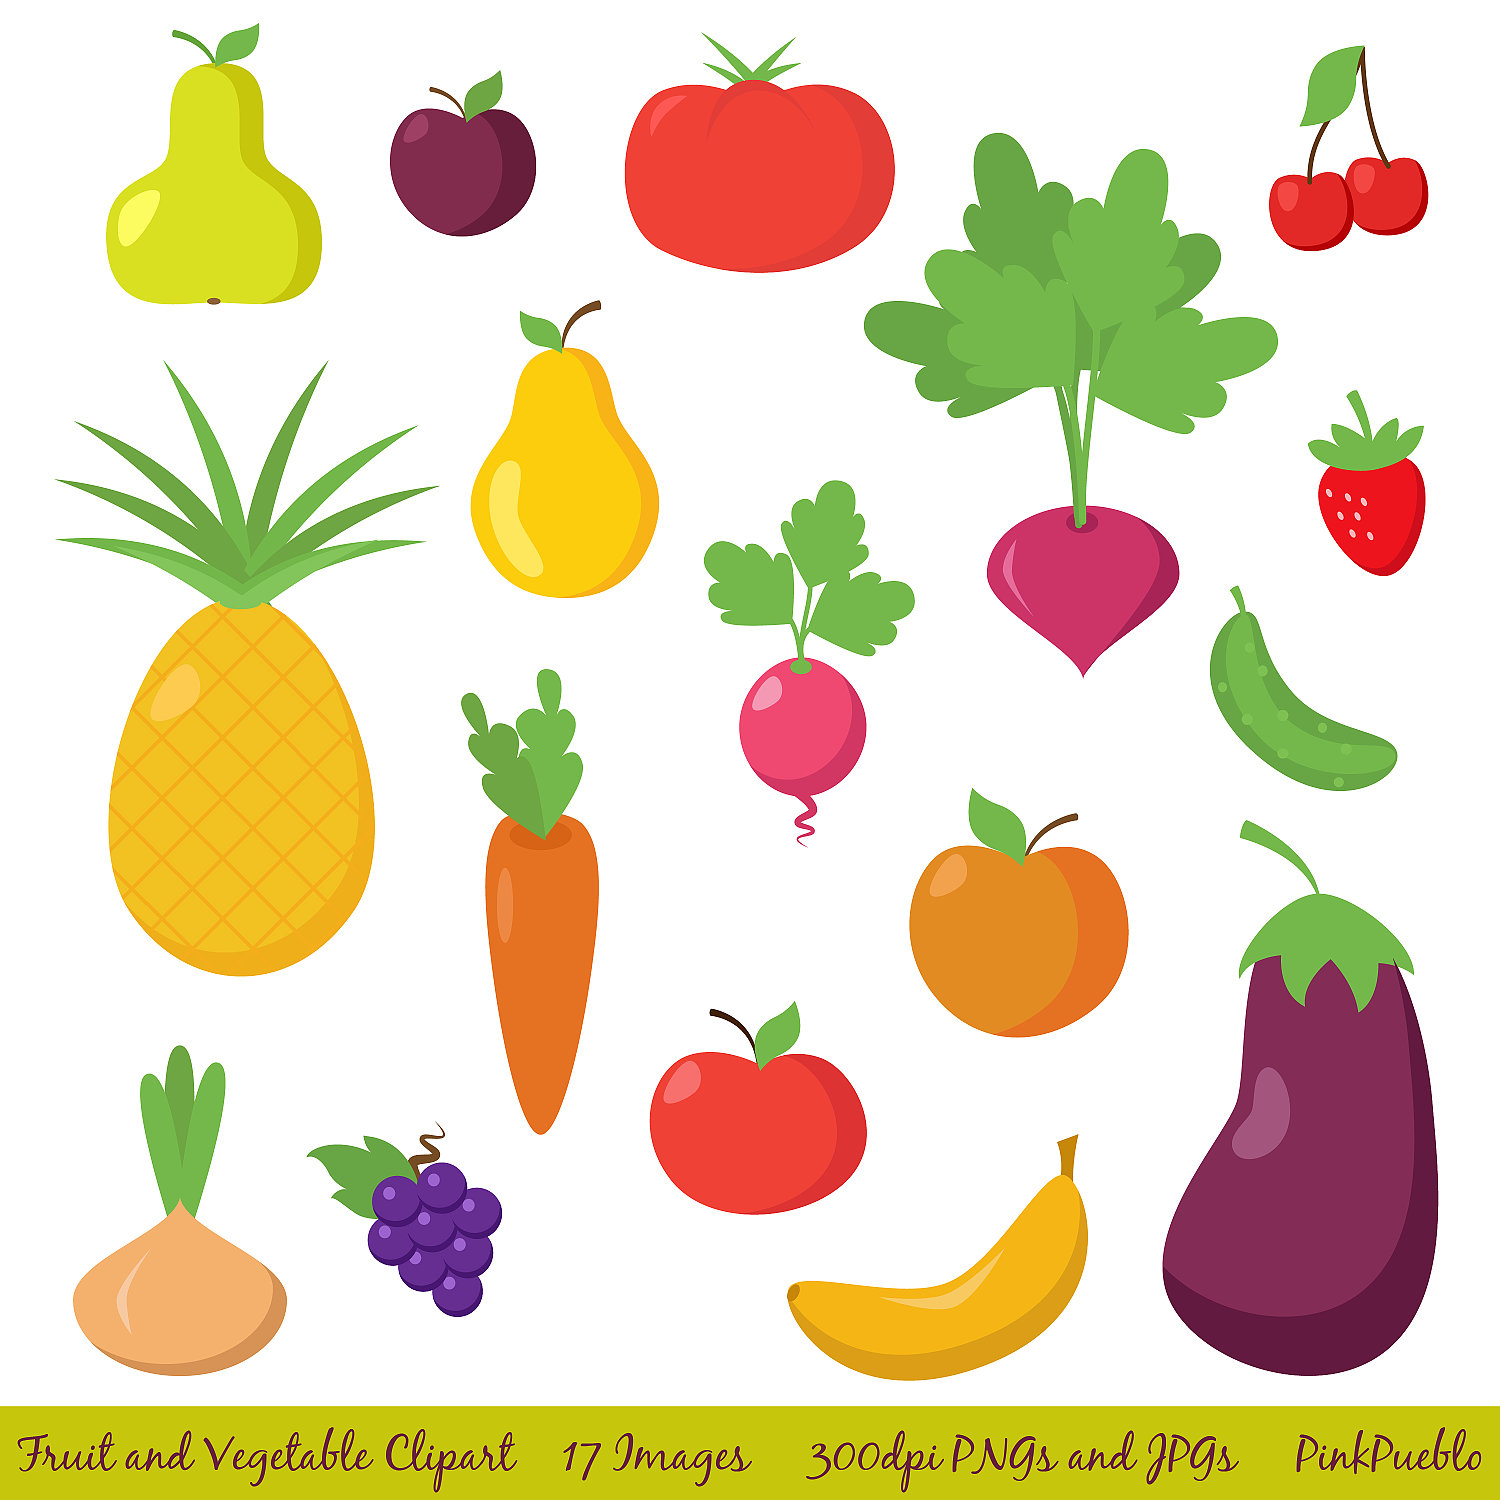 Fruit And Vegetable Clipart Clip Art, Fr-Fruit and Vegetable Clipart Clip Art, Fruit Clipart Clip Art, Vegetable Clipart Clip Art - Commercial and Personal Use-7